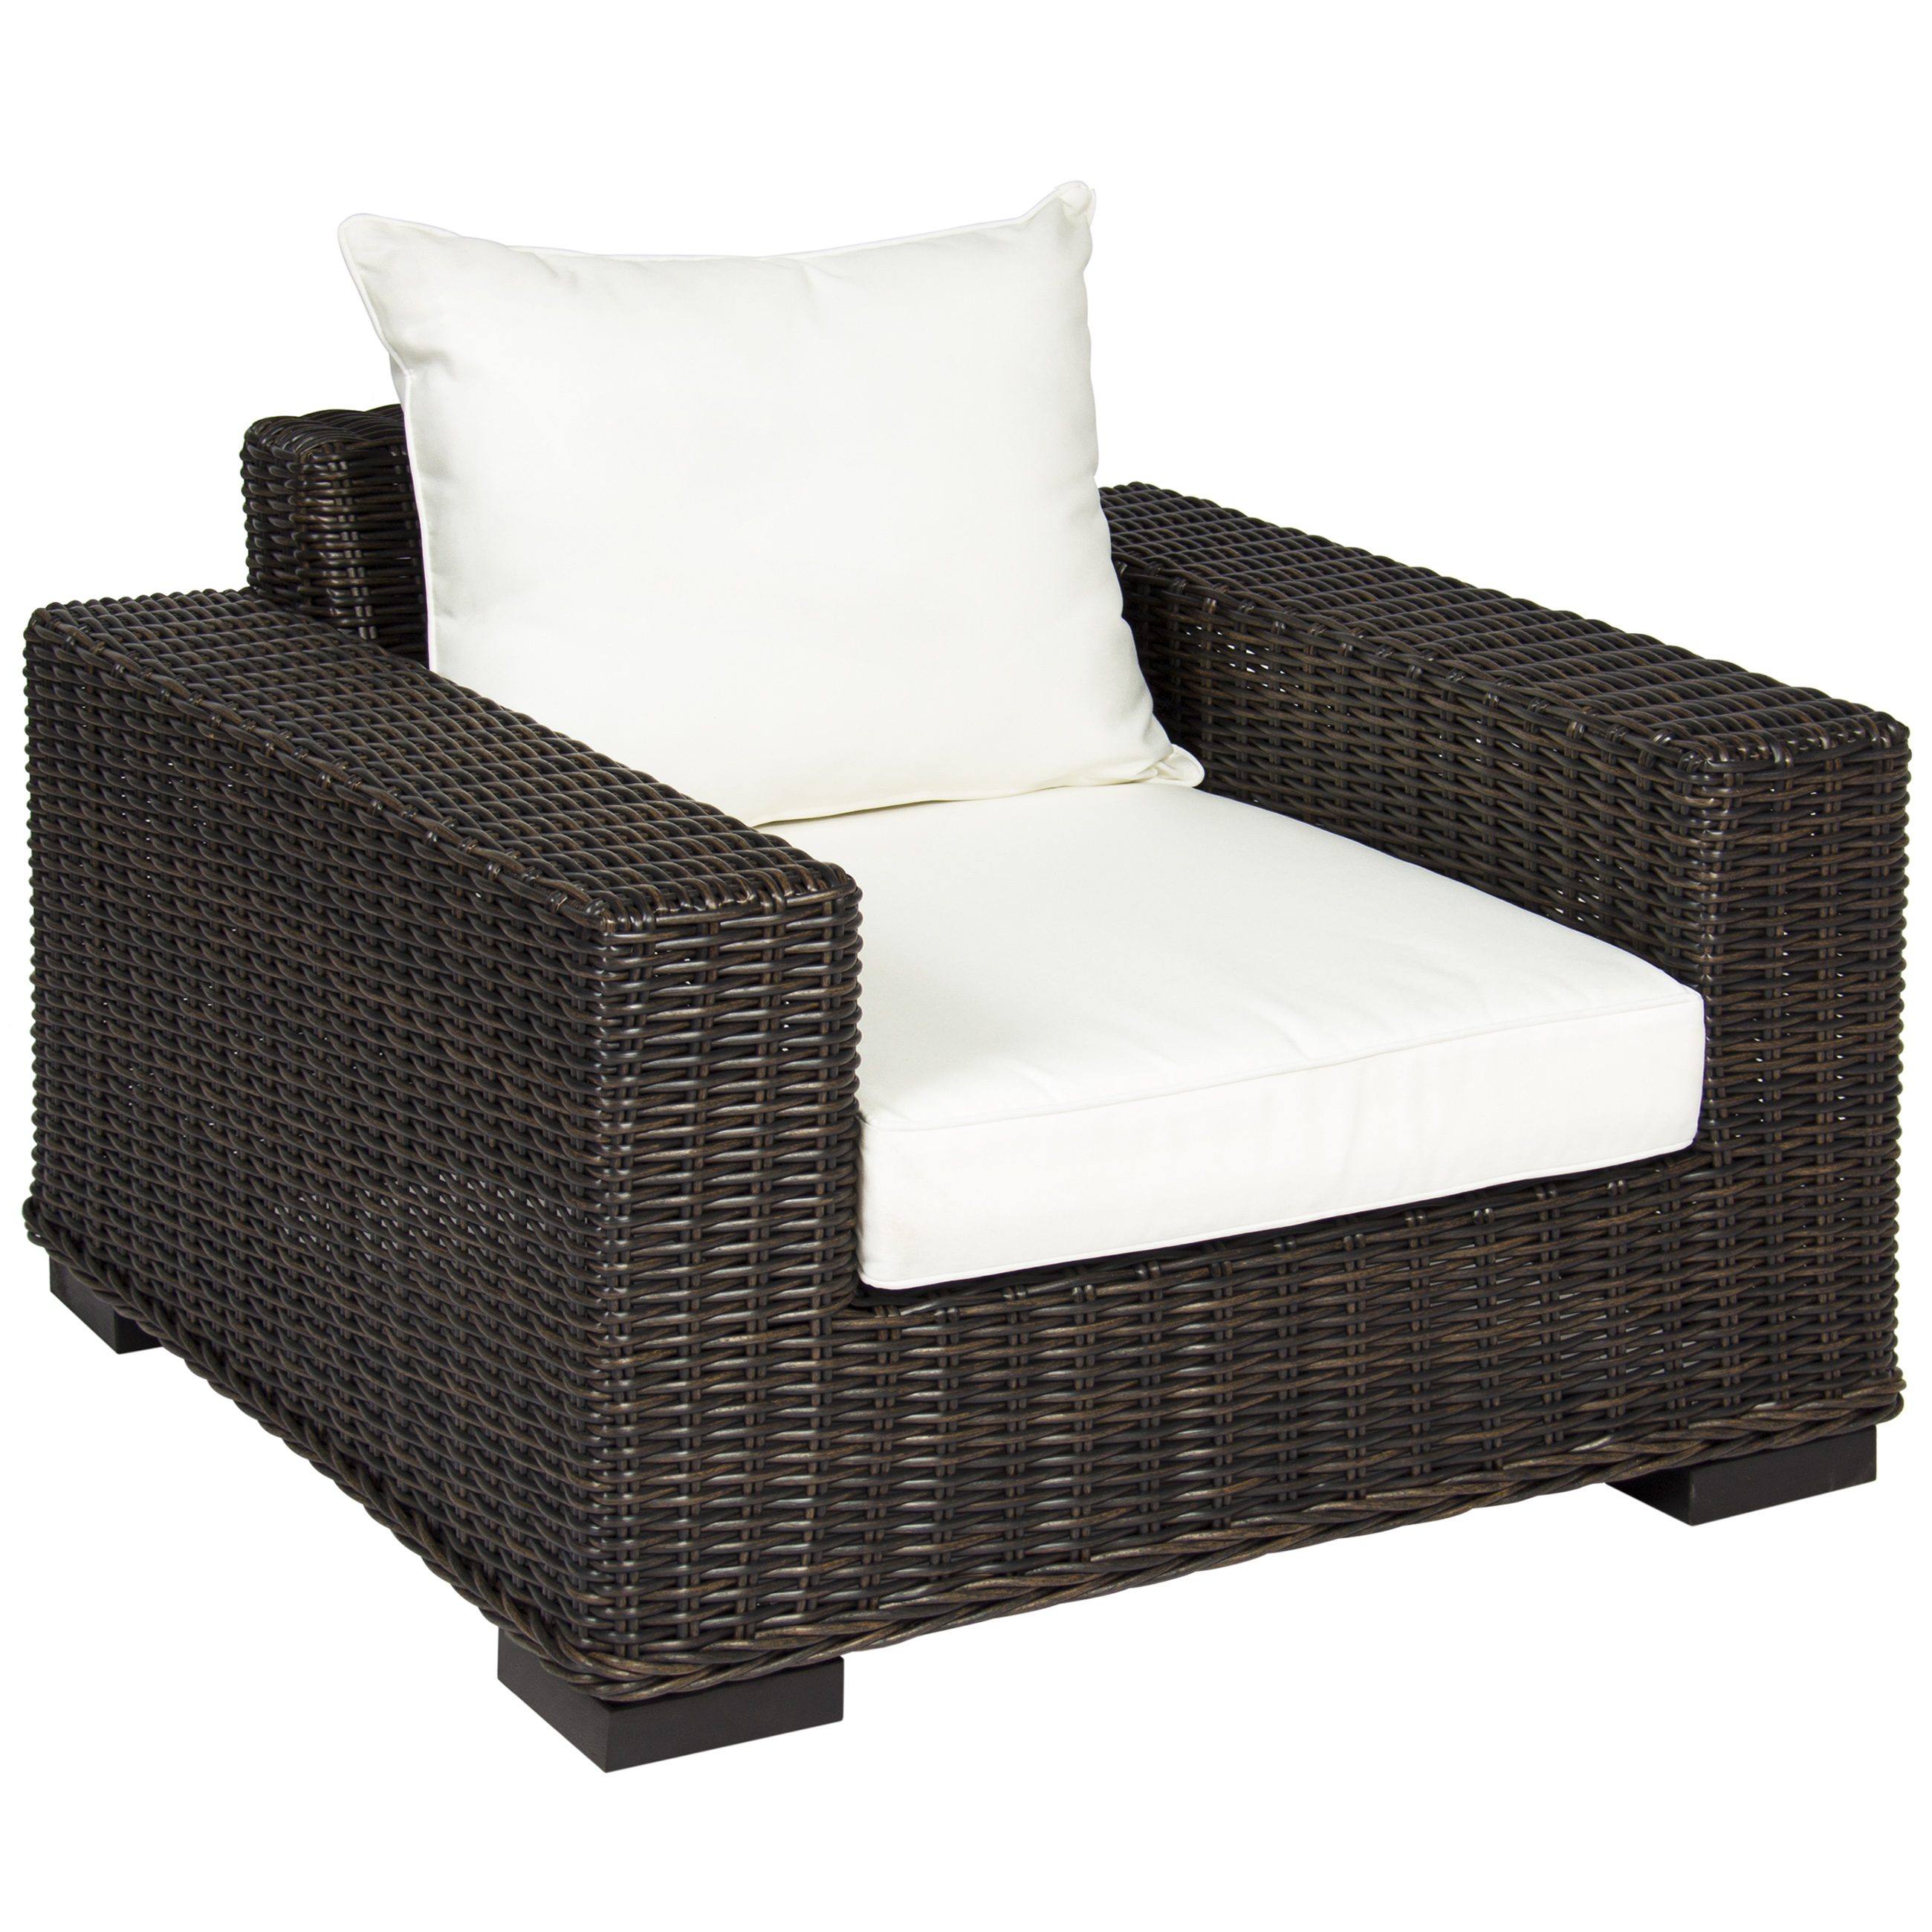 Best Choice Products Oversized Outdoor Patio Wicker Club Arm Chair w/ White Cushion - Brown